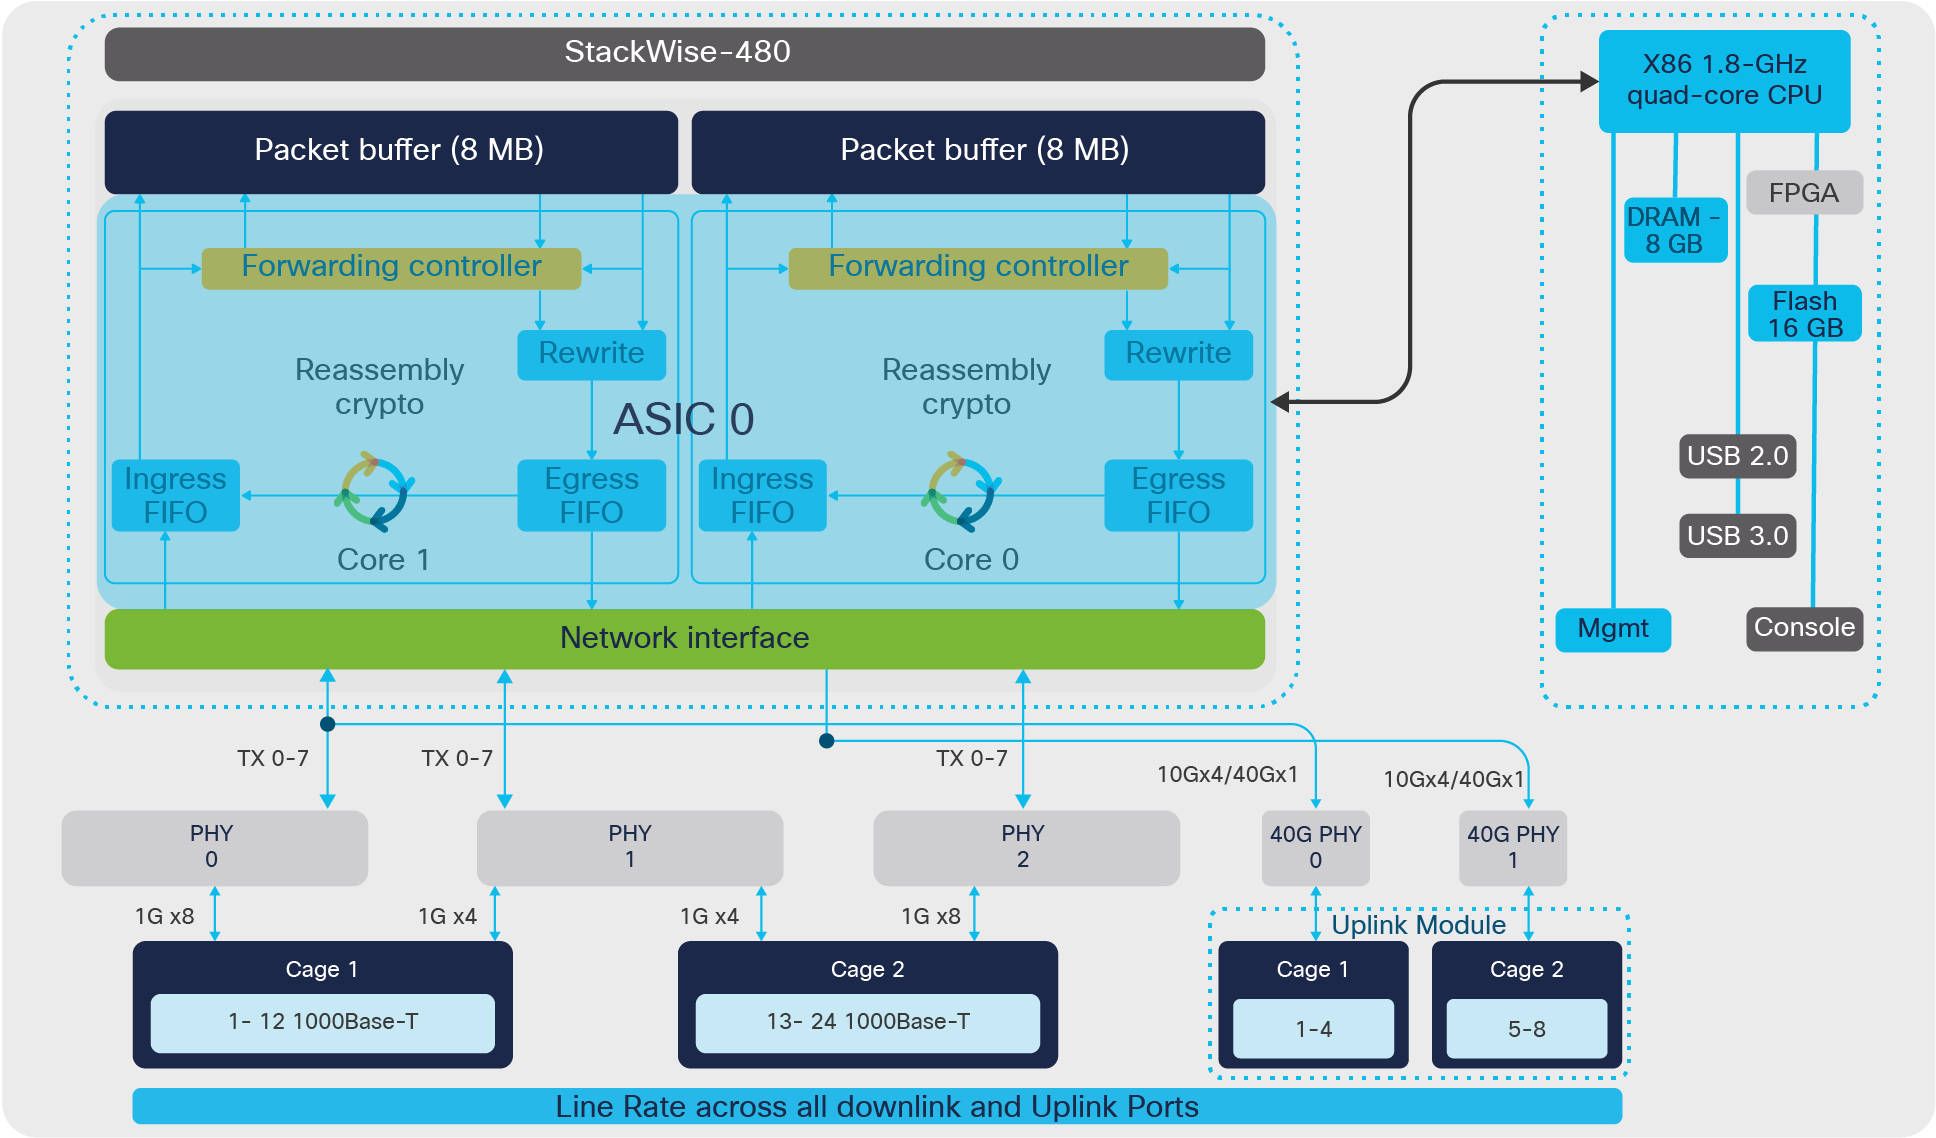 StackWise-480 architecture